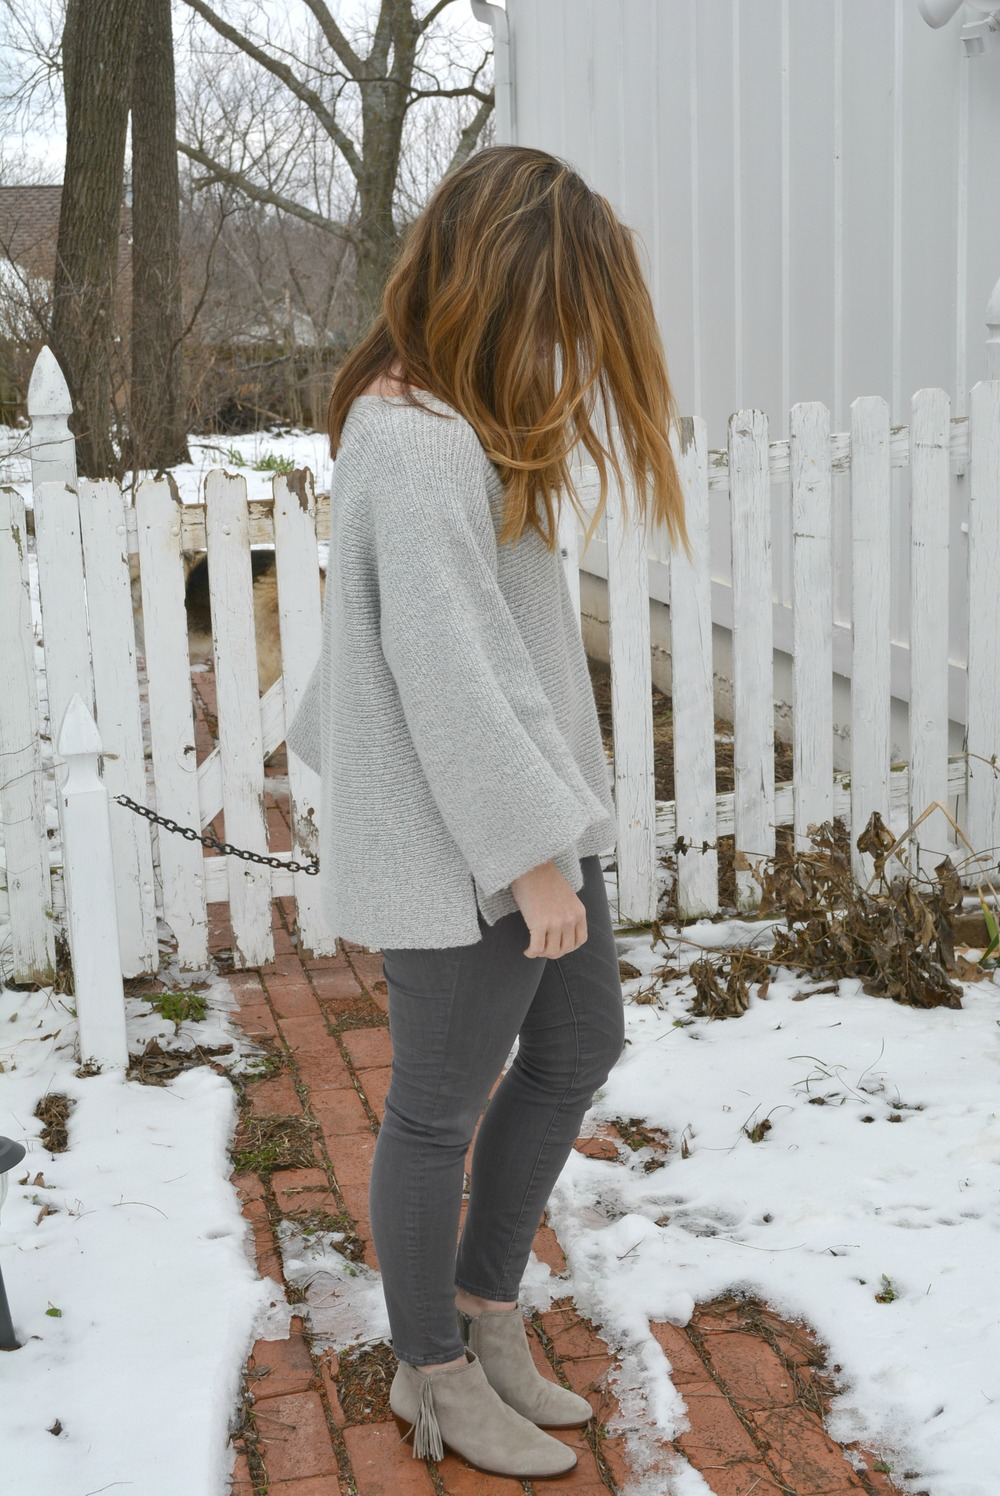 Monochromatic gray outfit